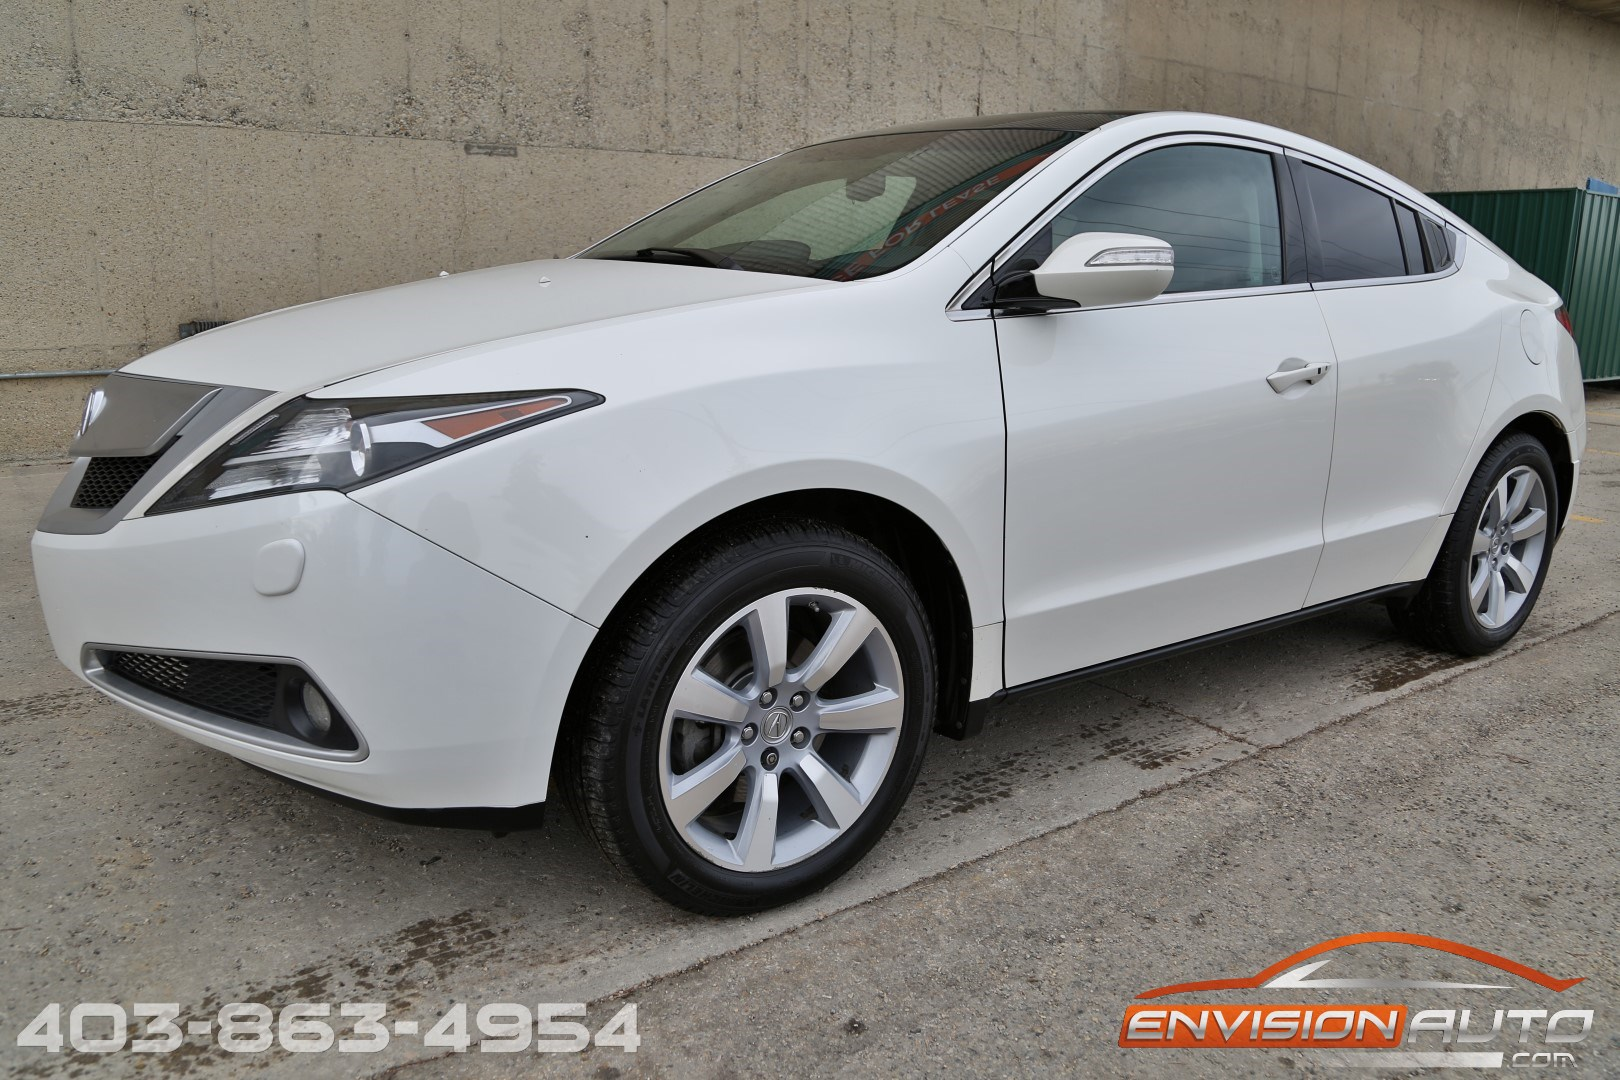 Acura acura zdx 2010 : 2010 Acura ZDX Technology Package - Envision Auto